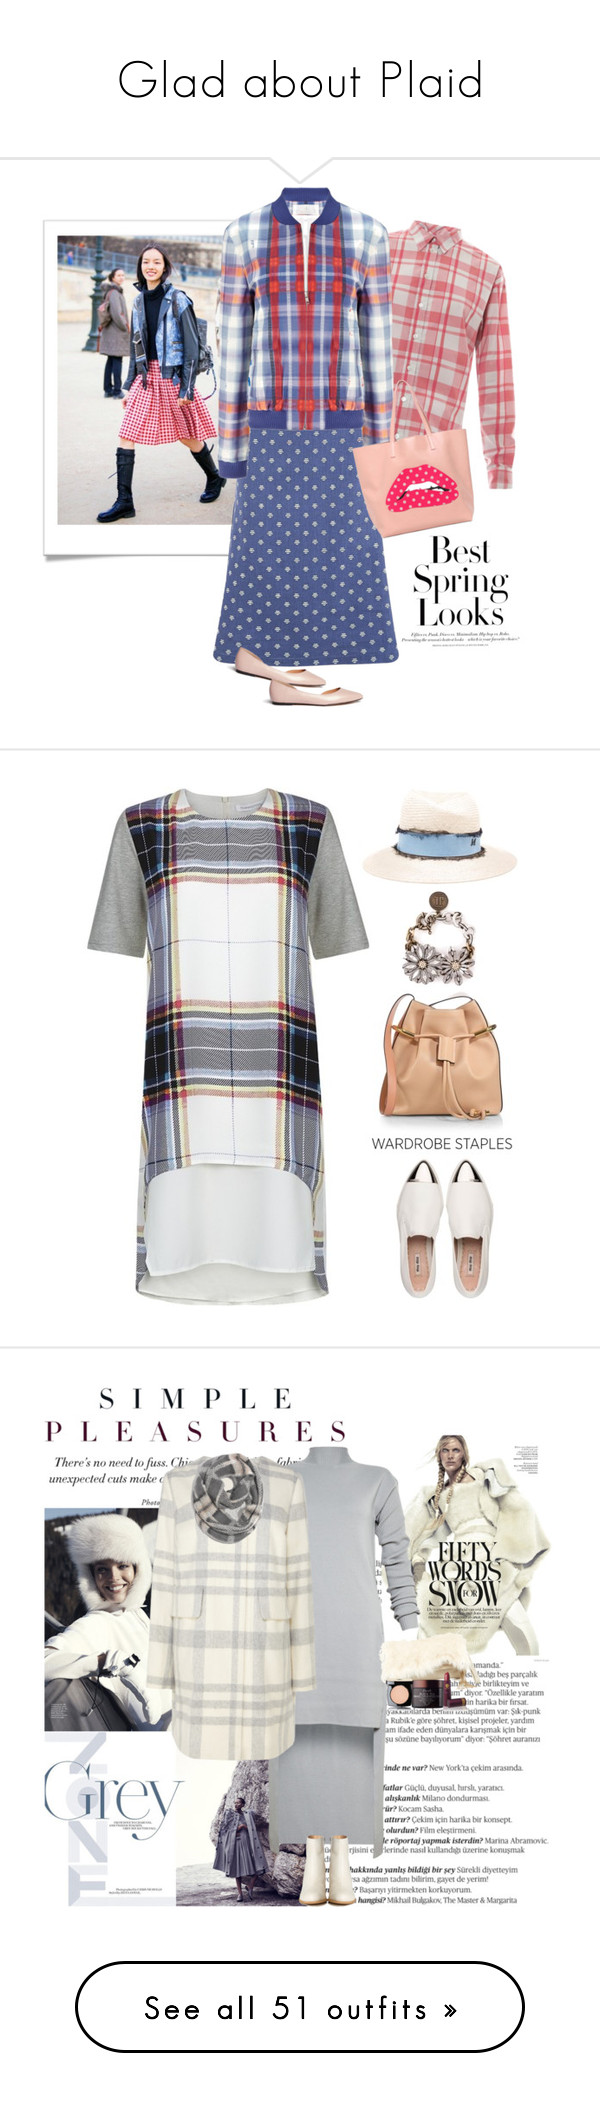 """""""Glad about Plaid"""" by musicfriend1 ❤ liked on Polyvore featuring H&M, Thierry Colson, Thakoon Addition, RED Valentino, Pedder Red, Finders Keepers, Miu Miu, Chloé, Maison Michel and Lanvin"""